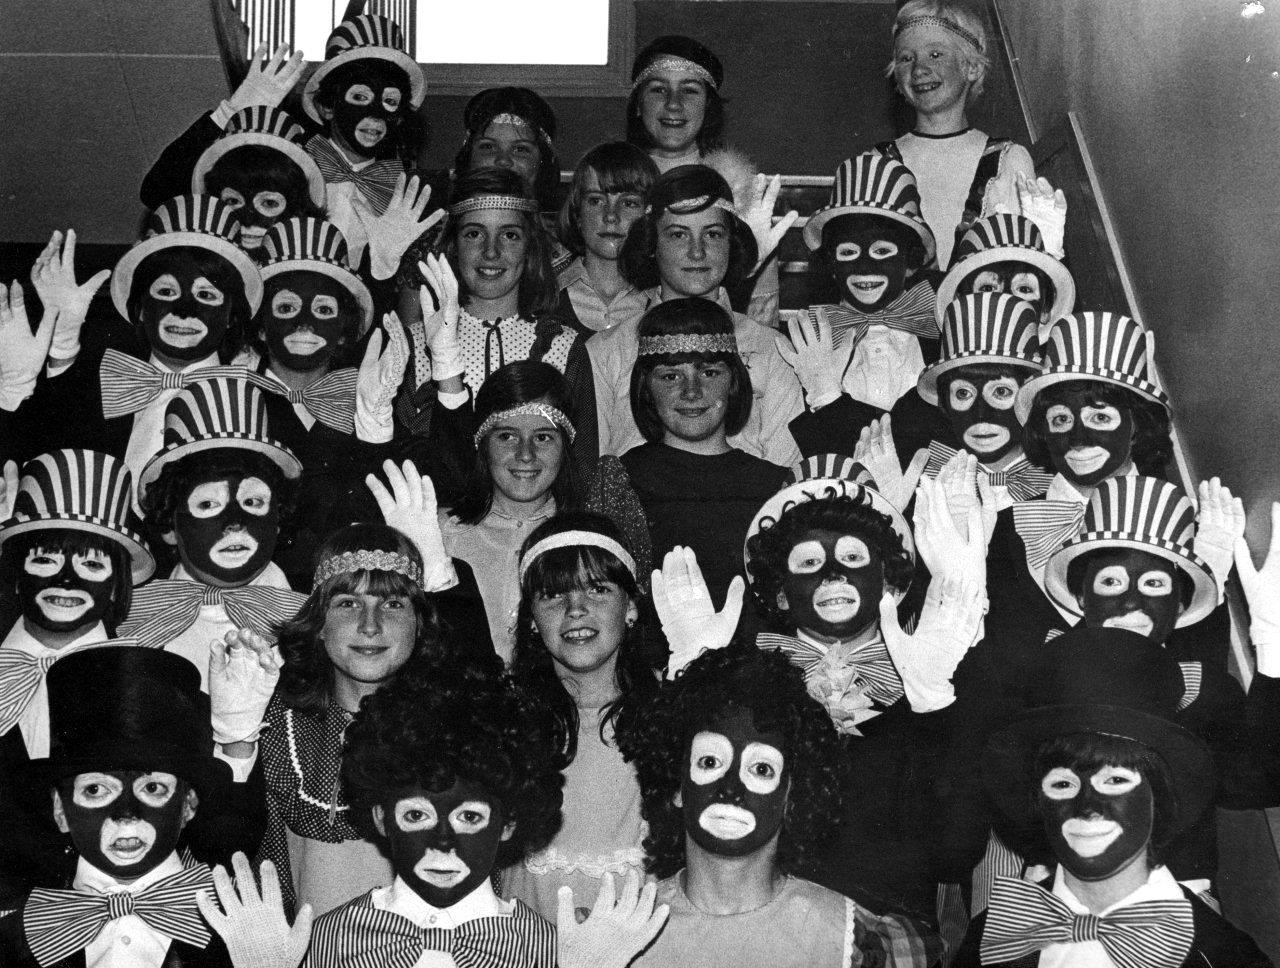 Hm launches a black and white minstrel clothing range for kids